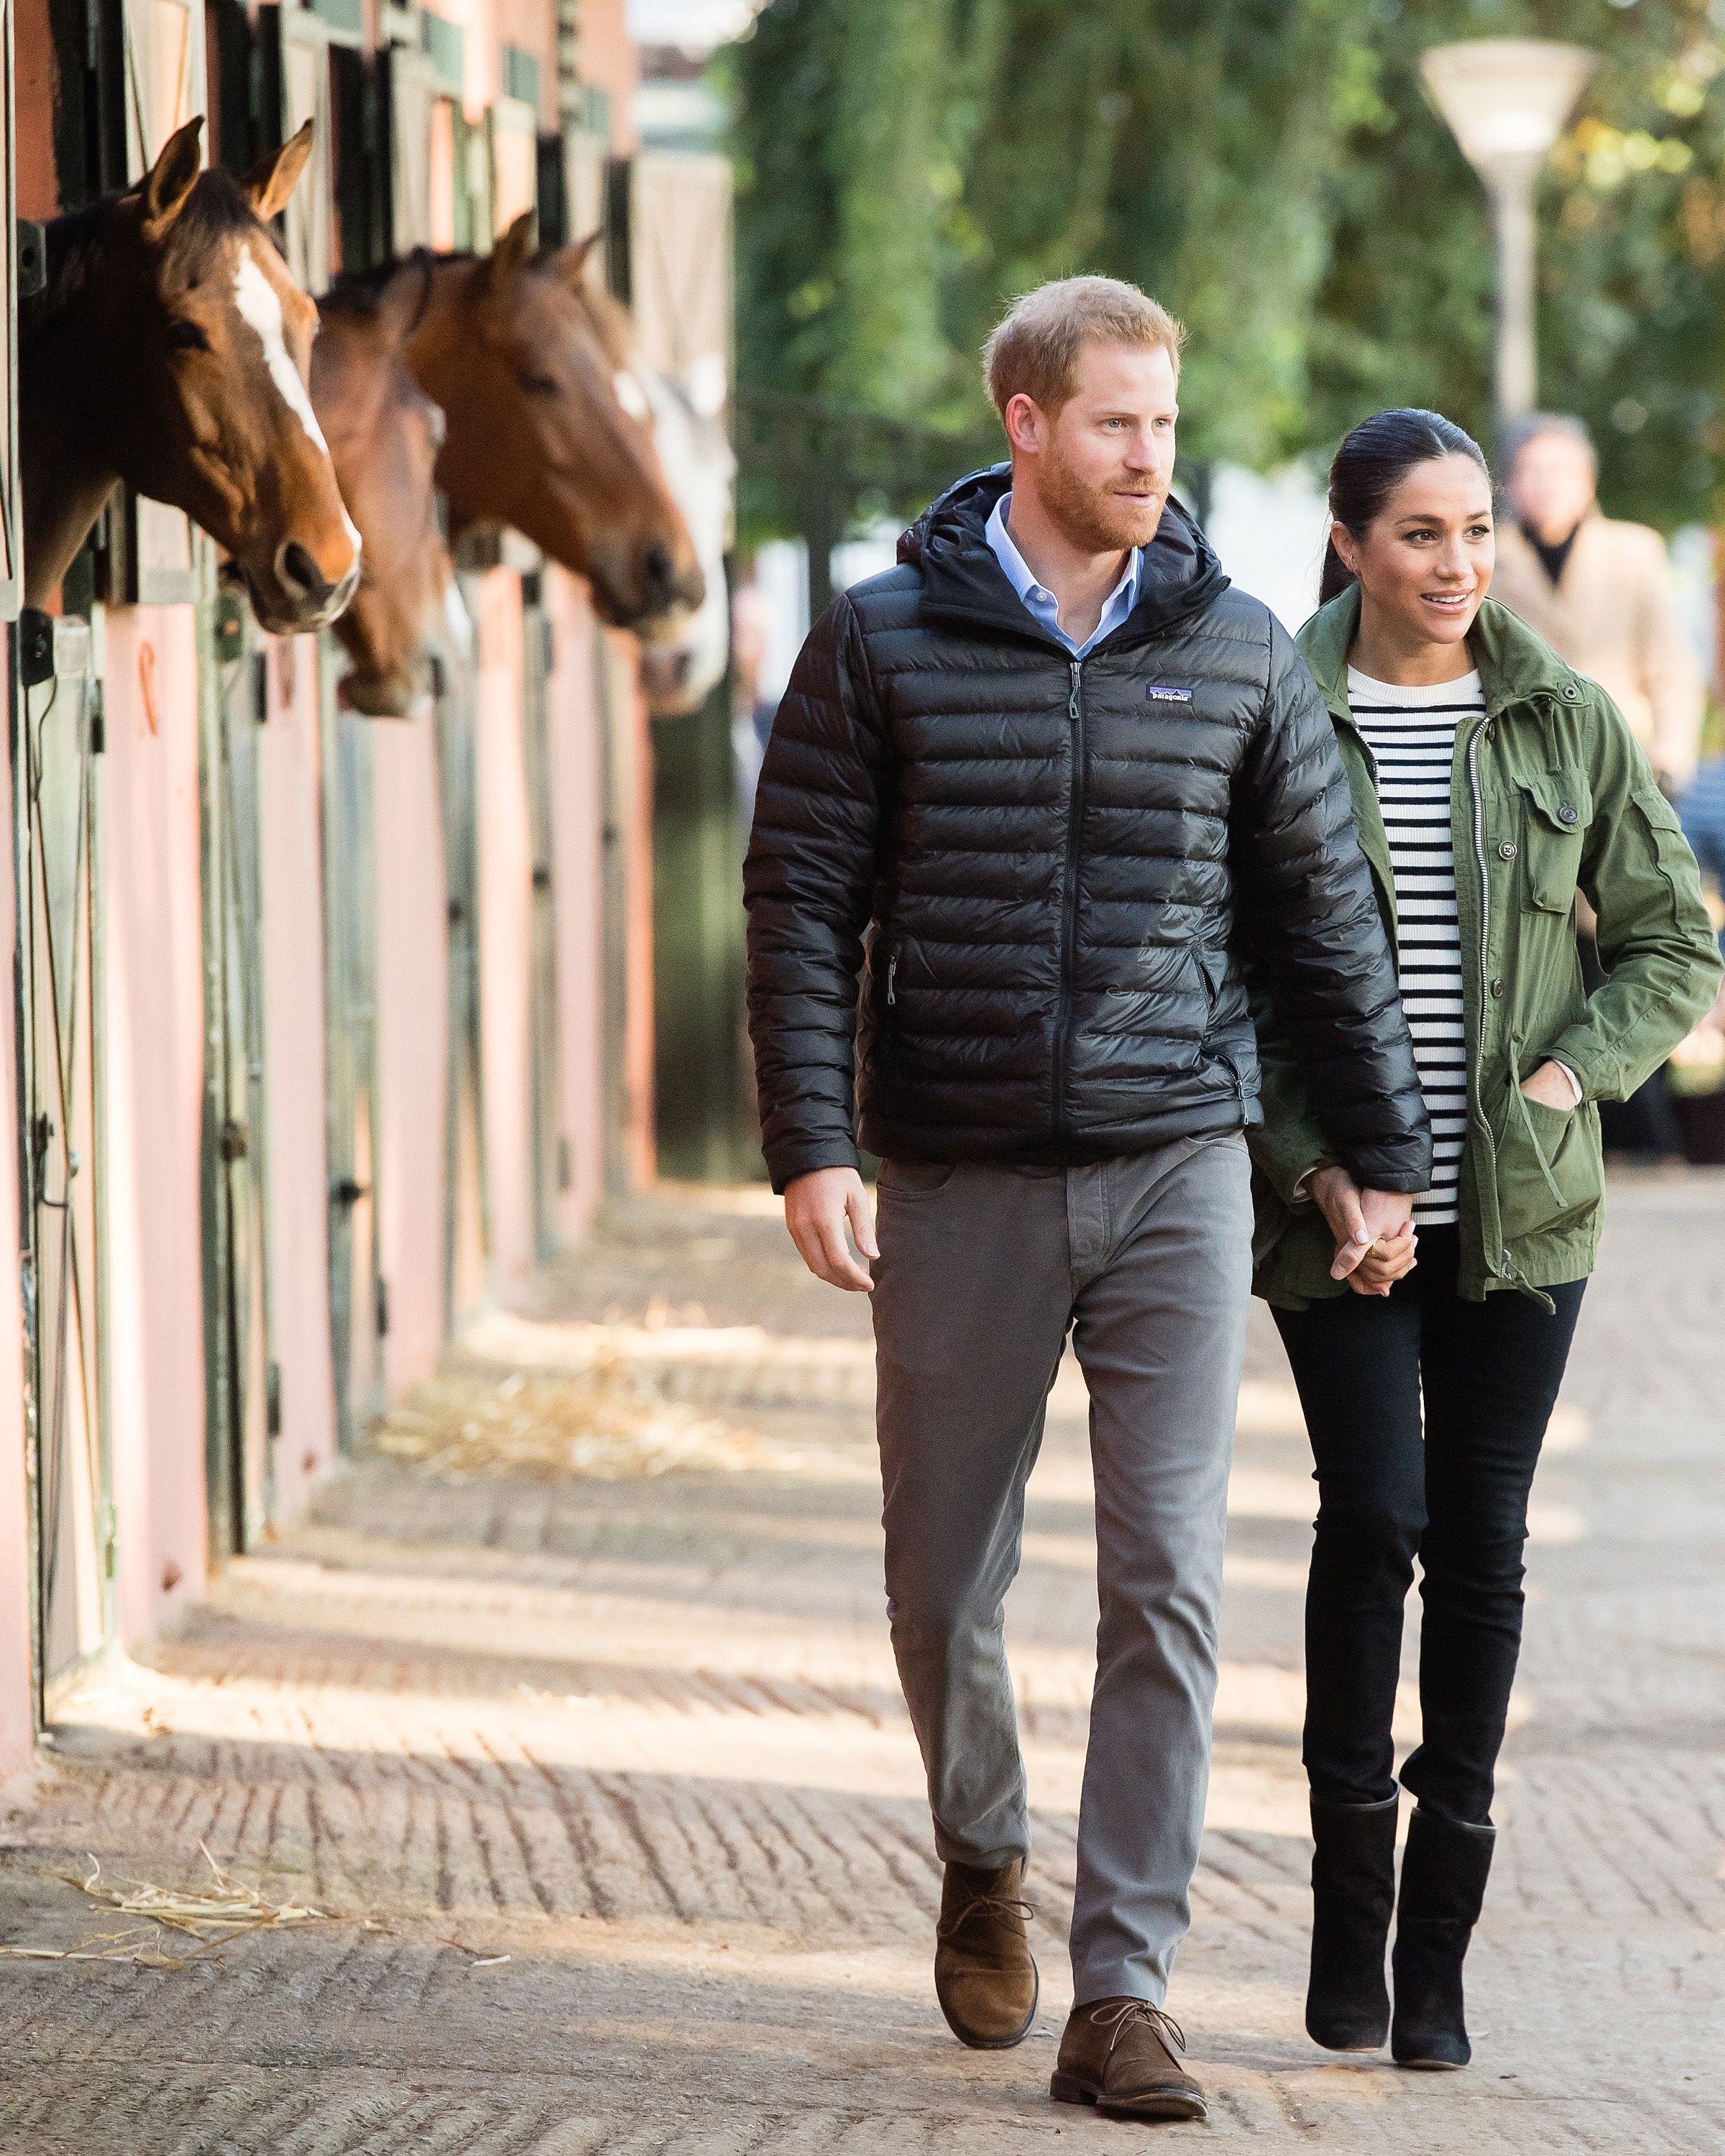 The real reason Meghan Markle and Prince Harry aren't allowed to use 'Sussex Royal' branding